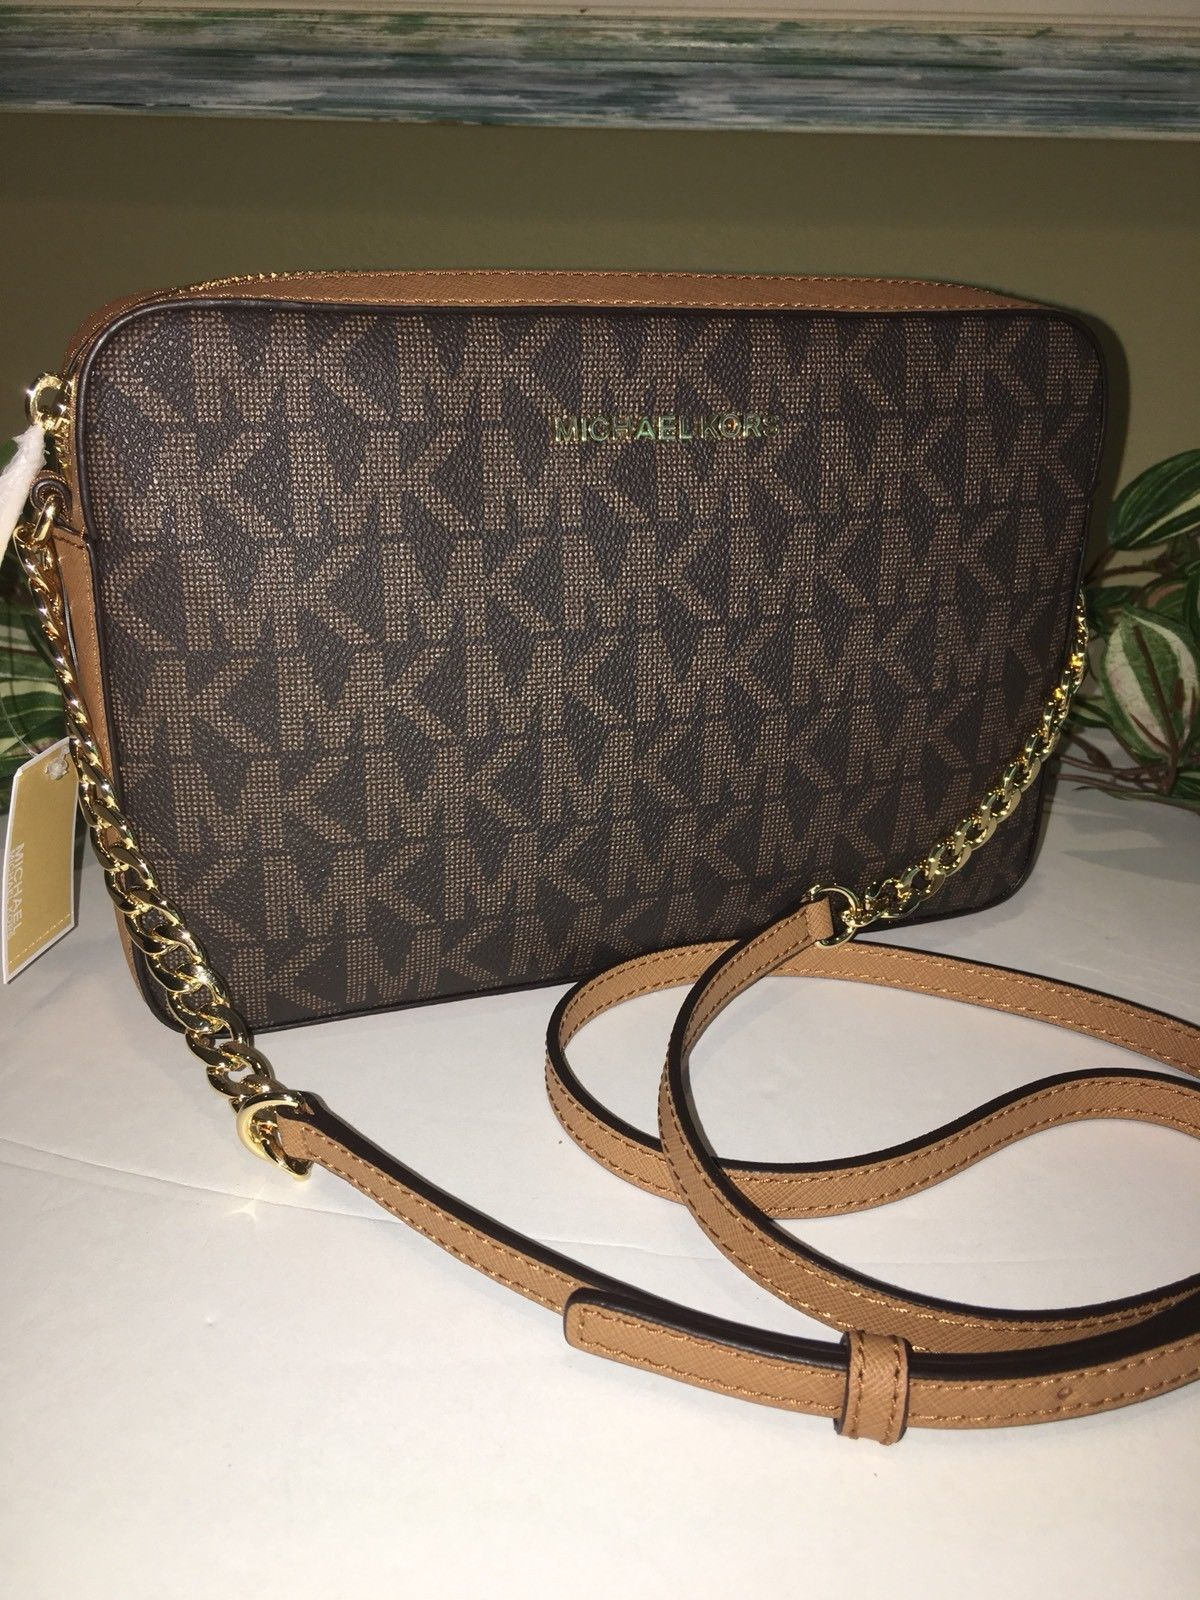 9ffe0966c37e42 S l1600. S l1600. Previous. MICHAEL KORS JET SET LARGE EAST WEST CROSSBODY  BAG WALLET BROWN SIGNATURE $198